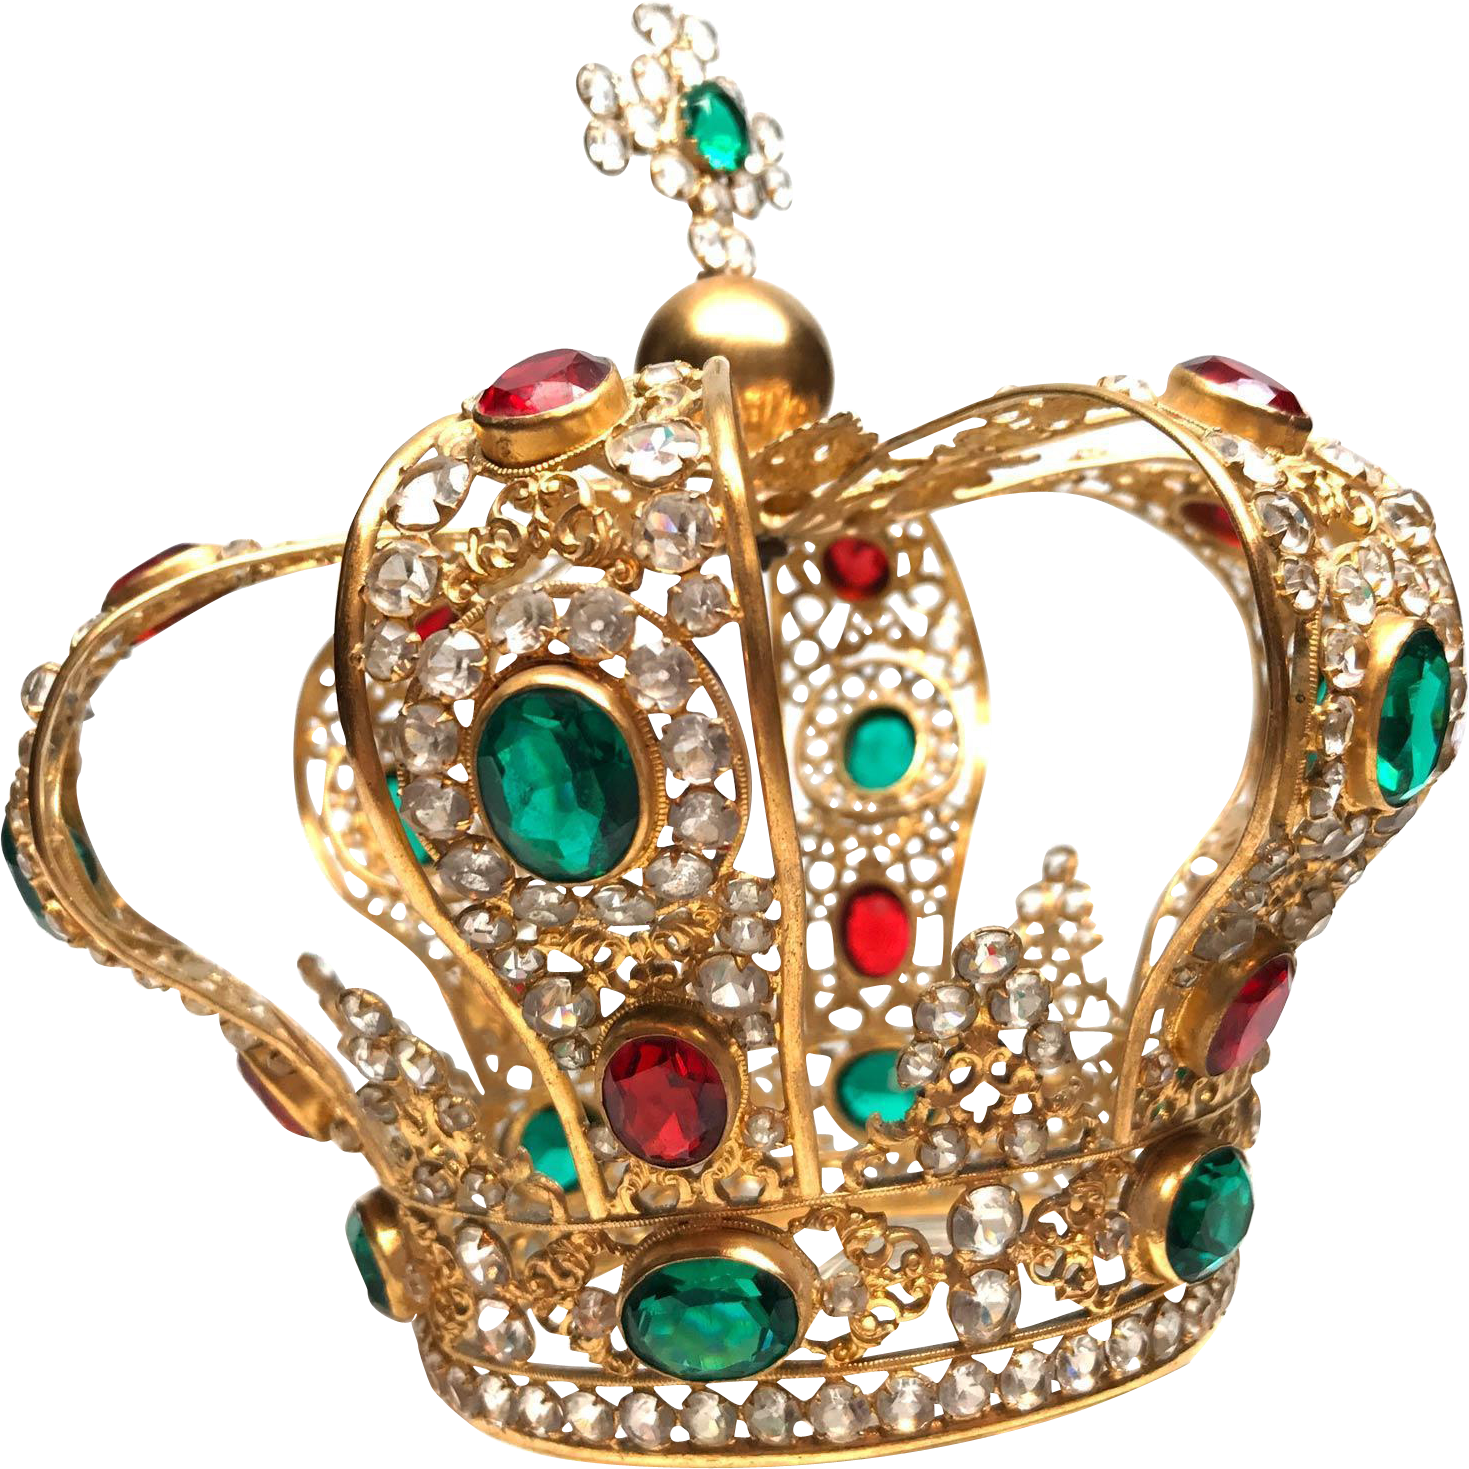 Antique Nineteenth Century Gilded Bronze French Santos Crown, Couronne Royale